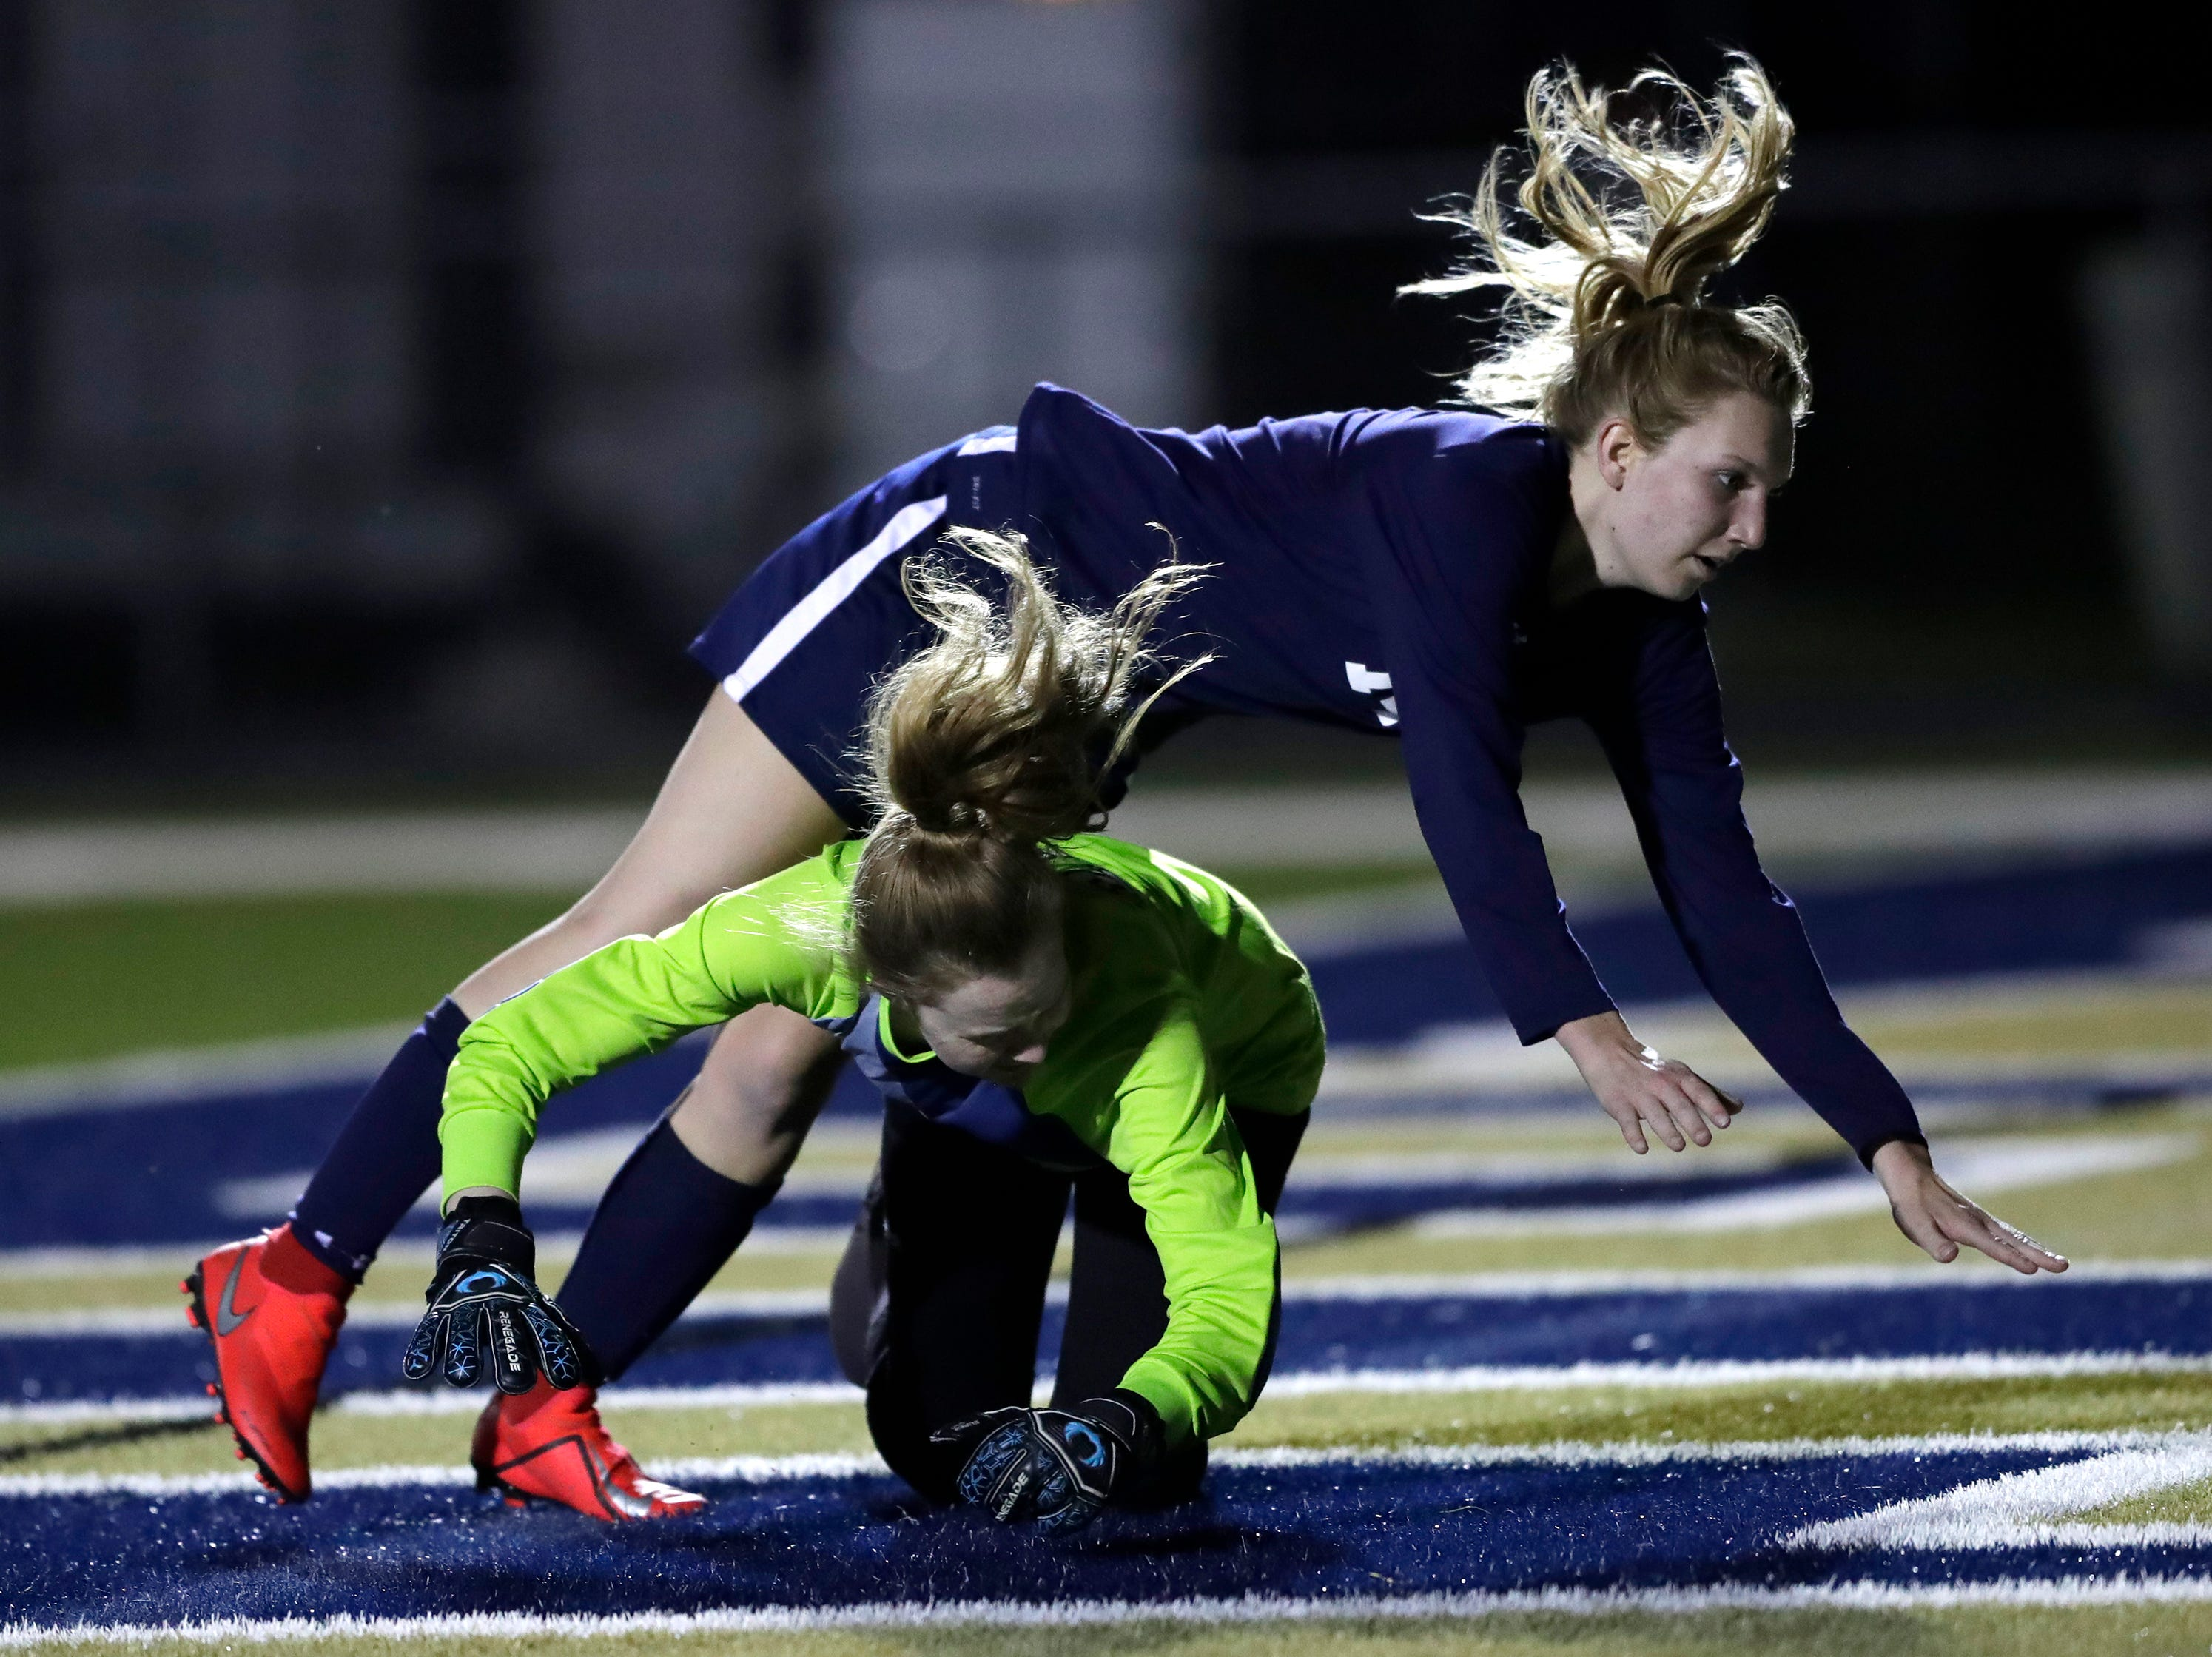 Appleton North High School's Emma Christensen (14) scores a goal as she collides with Kaukauna High School's keeper Autumn Steffens (25) during their girls soccer game Tuesday, April 23, 2019, in Appleton, Wis. 